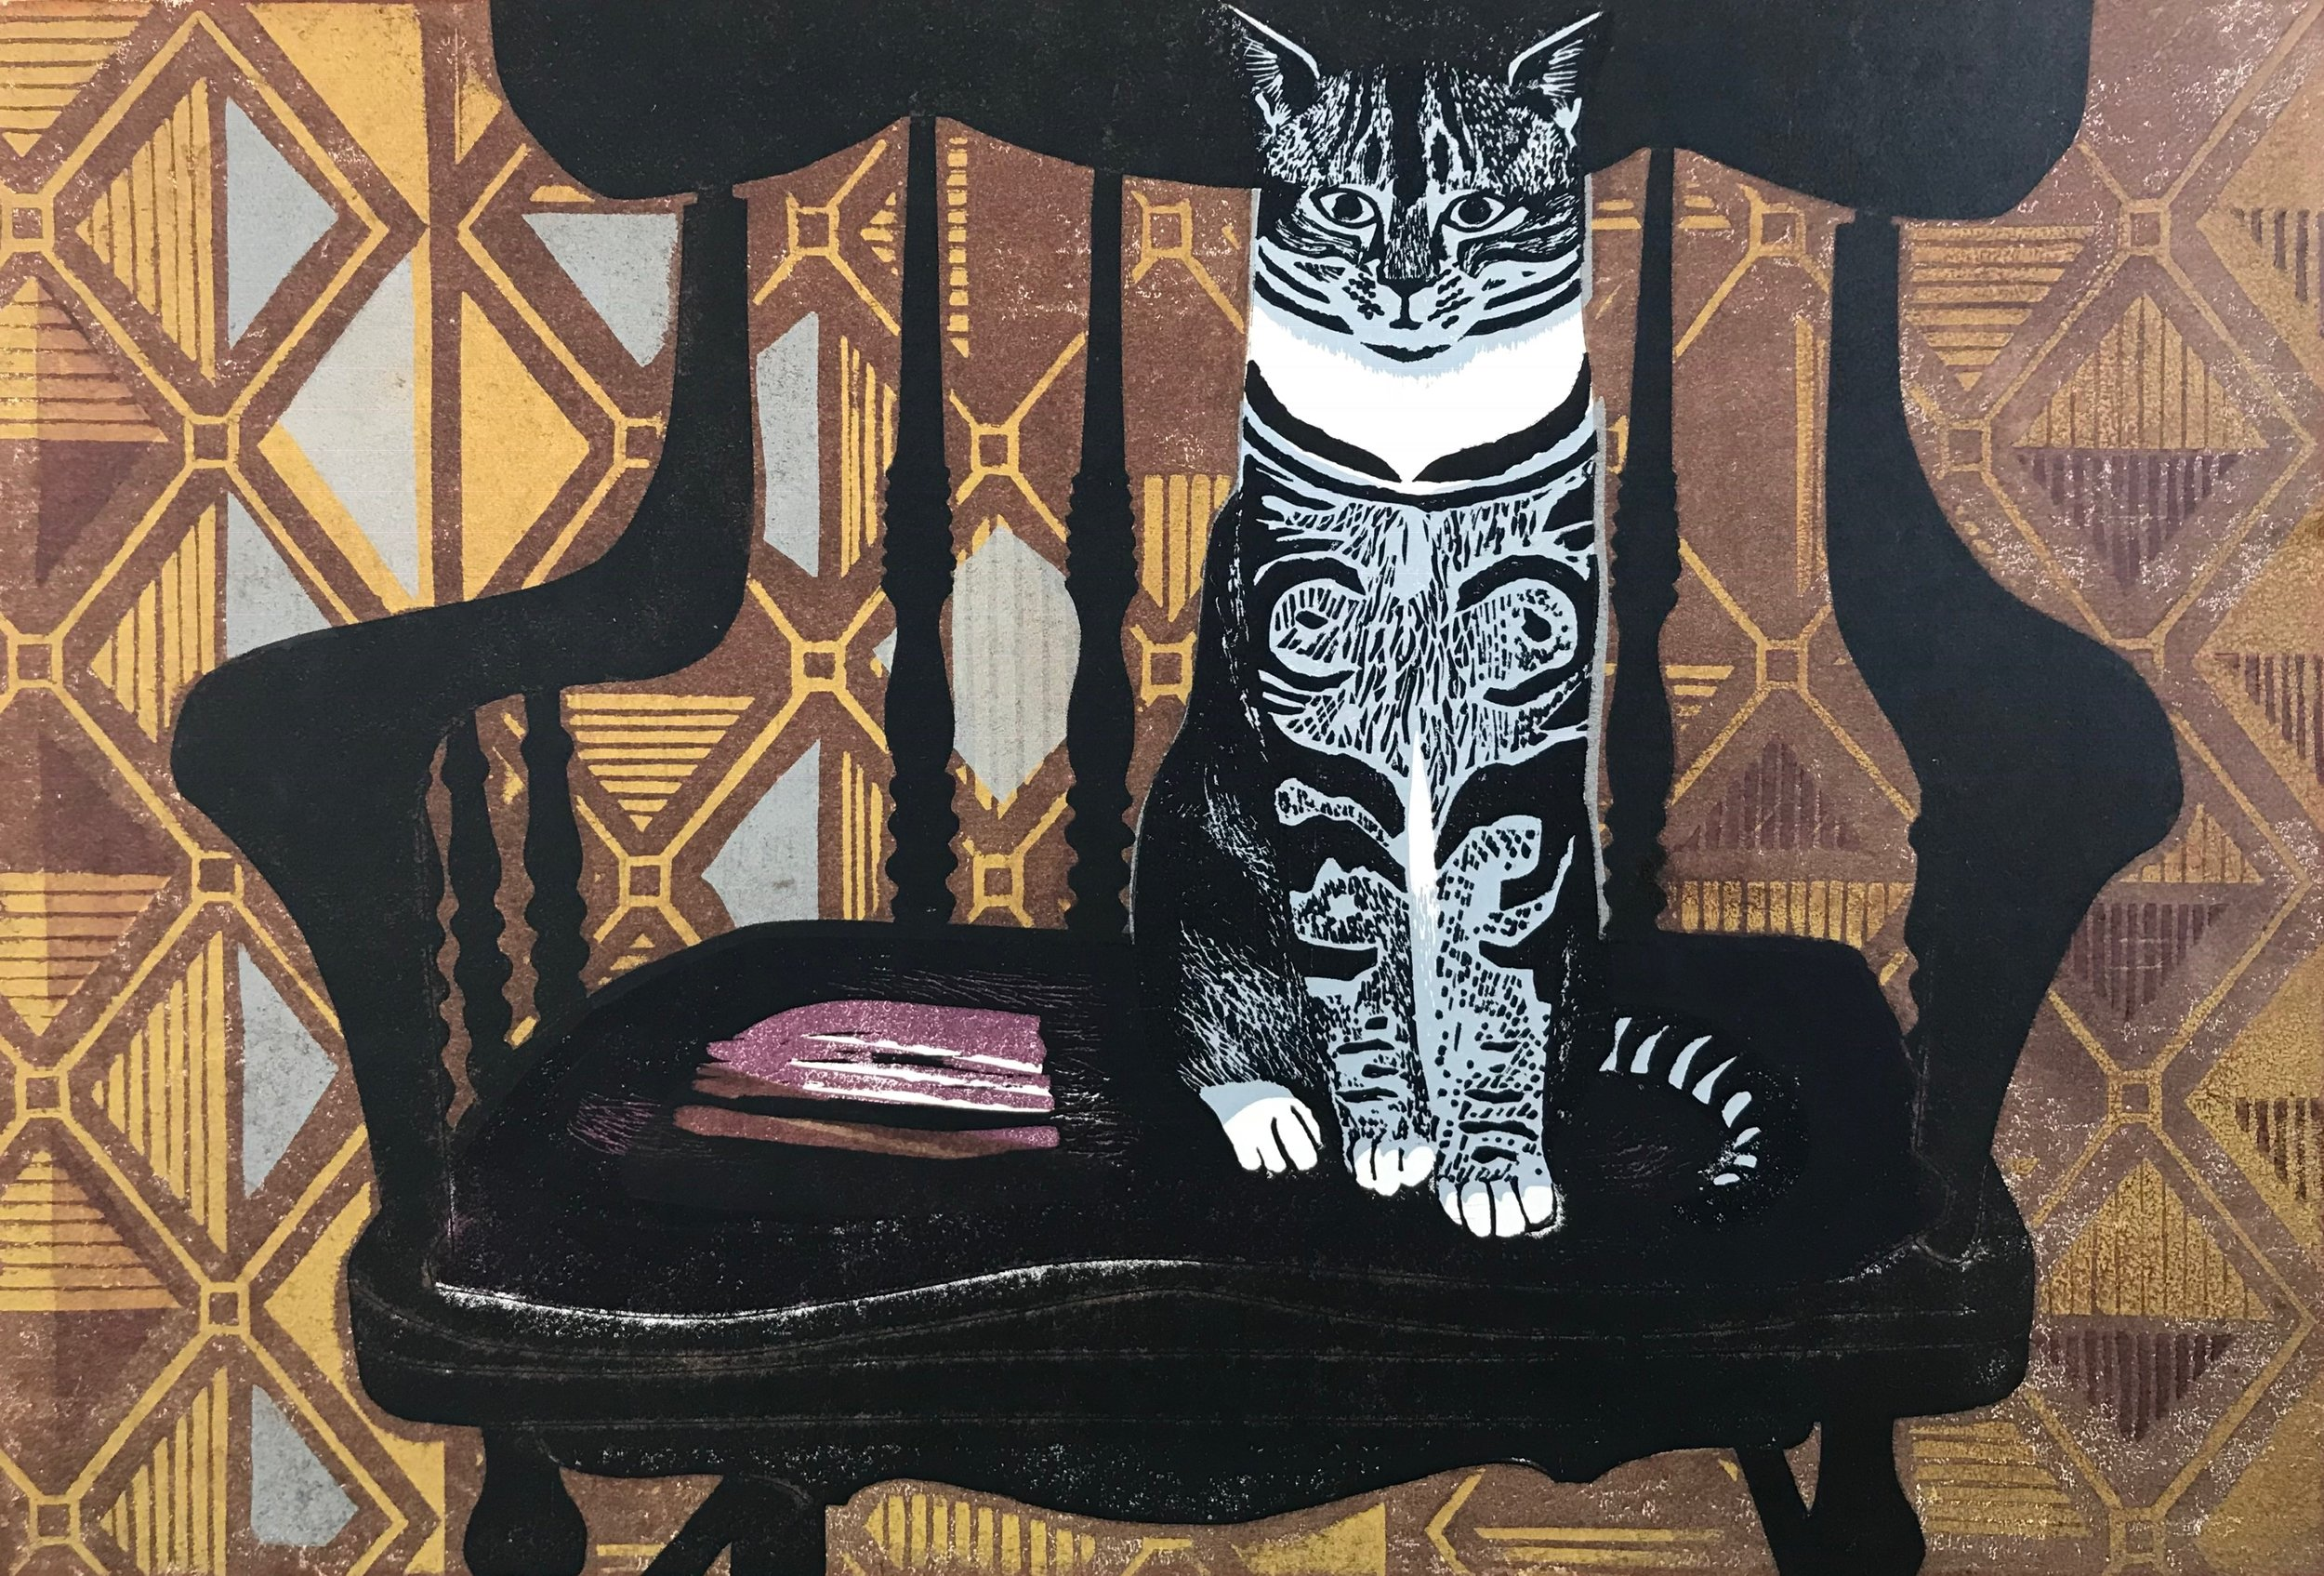 Above: Sheila Robinson. Cat, 1961. Linocut. SOLD